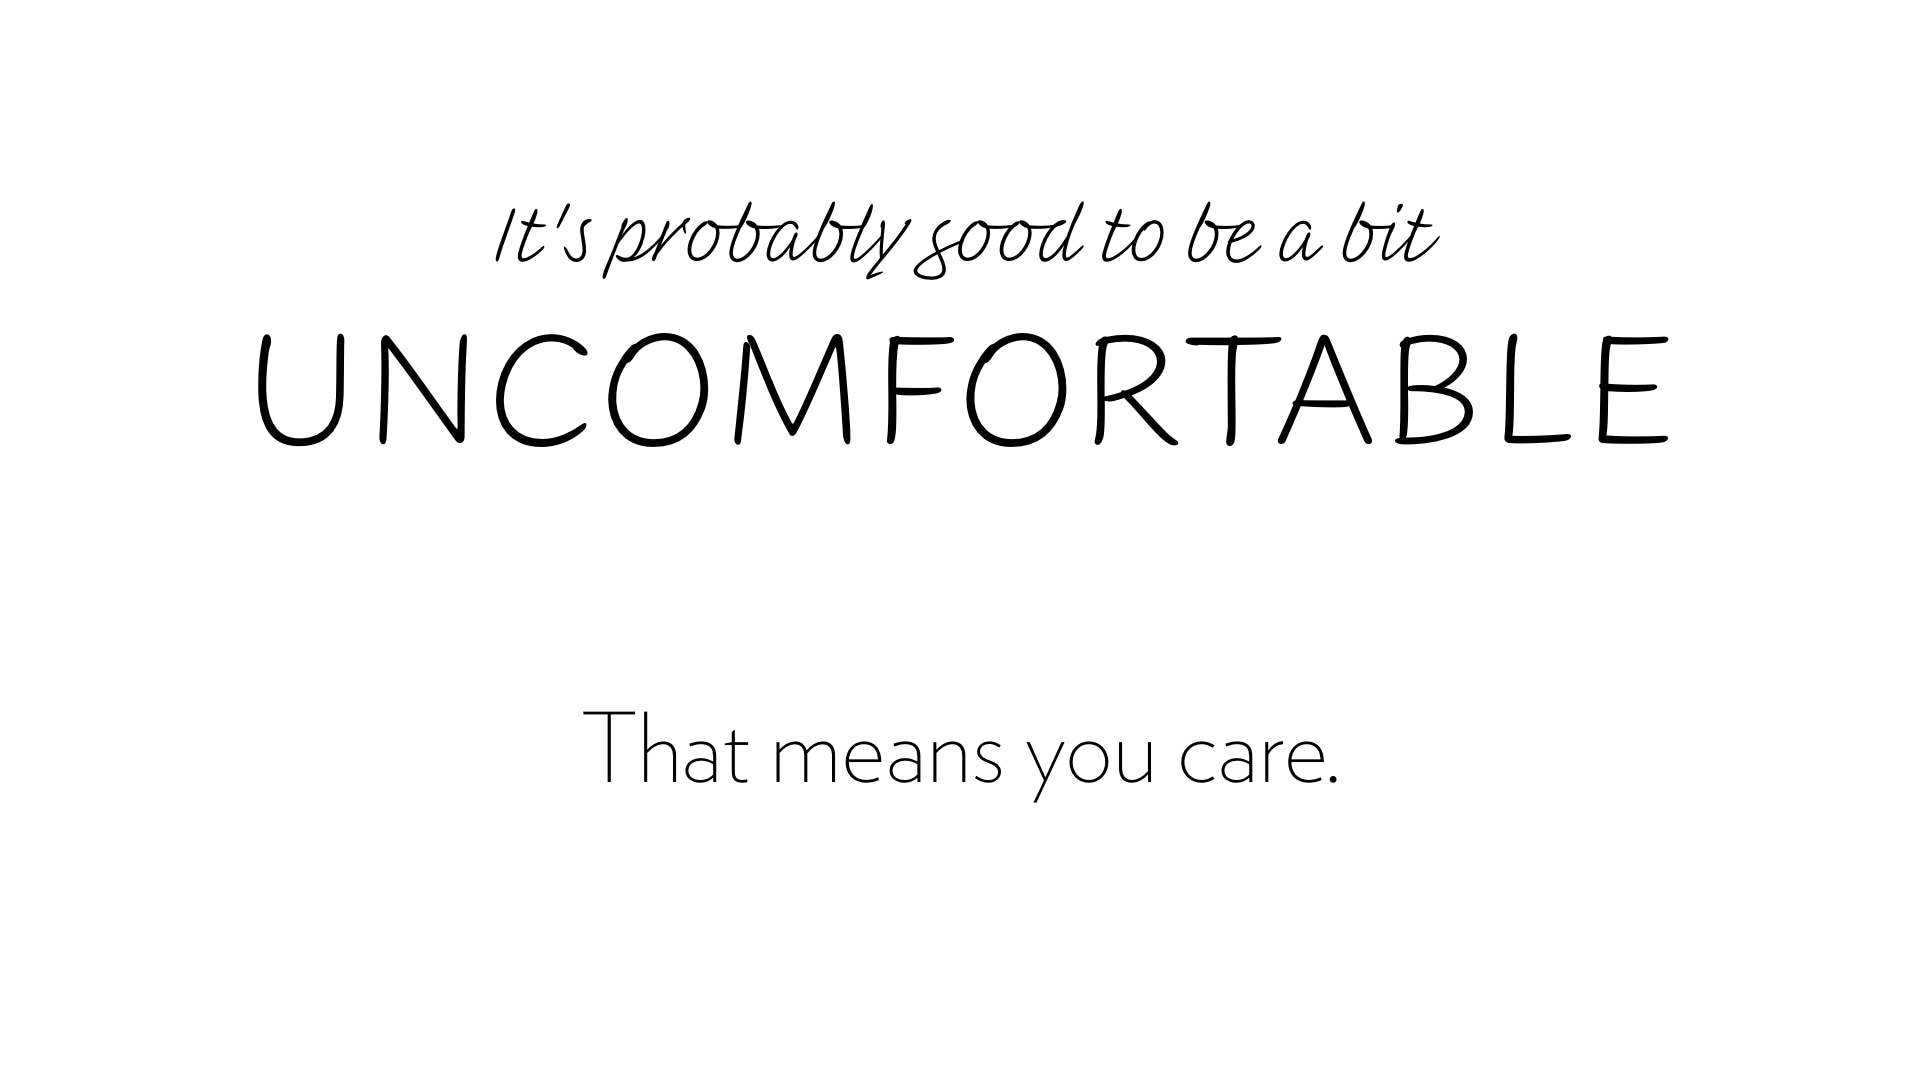 It's probably good to be a bit uncomfortable. That means you care.